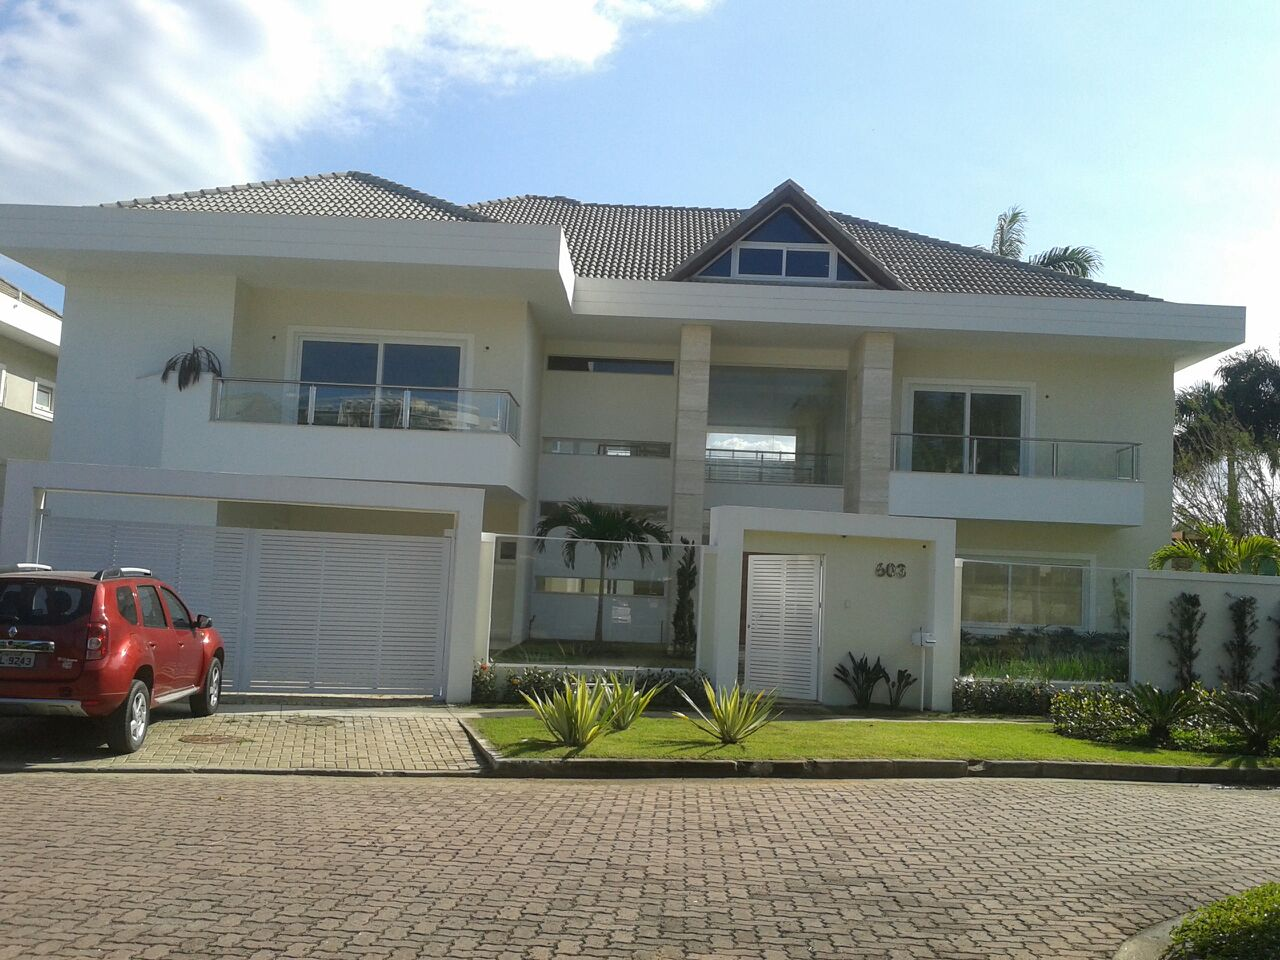 Gorgeous three story house in rio de janeiro brasil for Three story house for sale